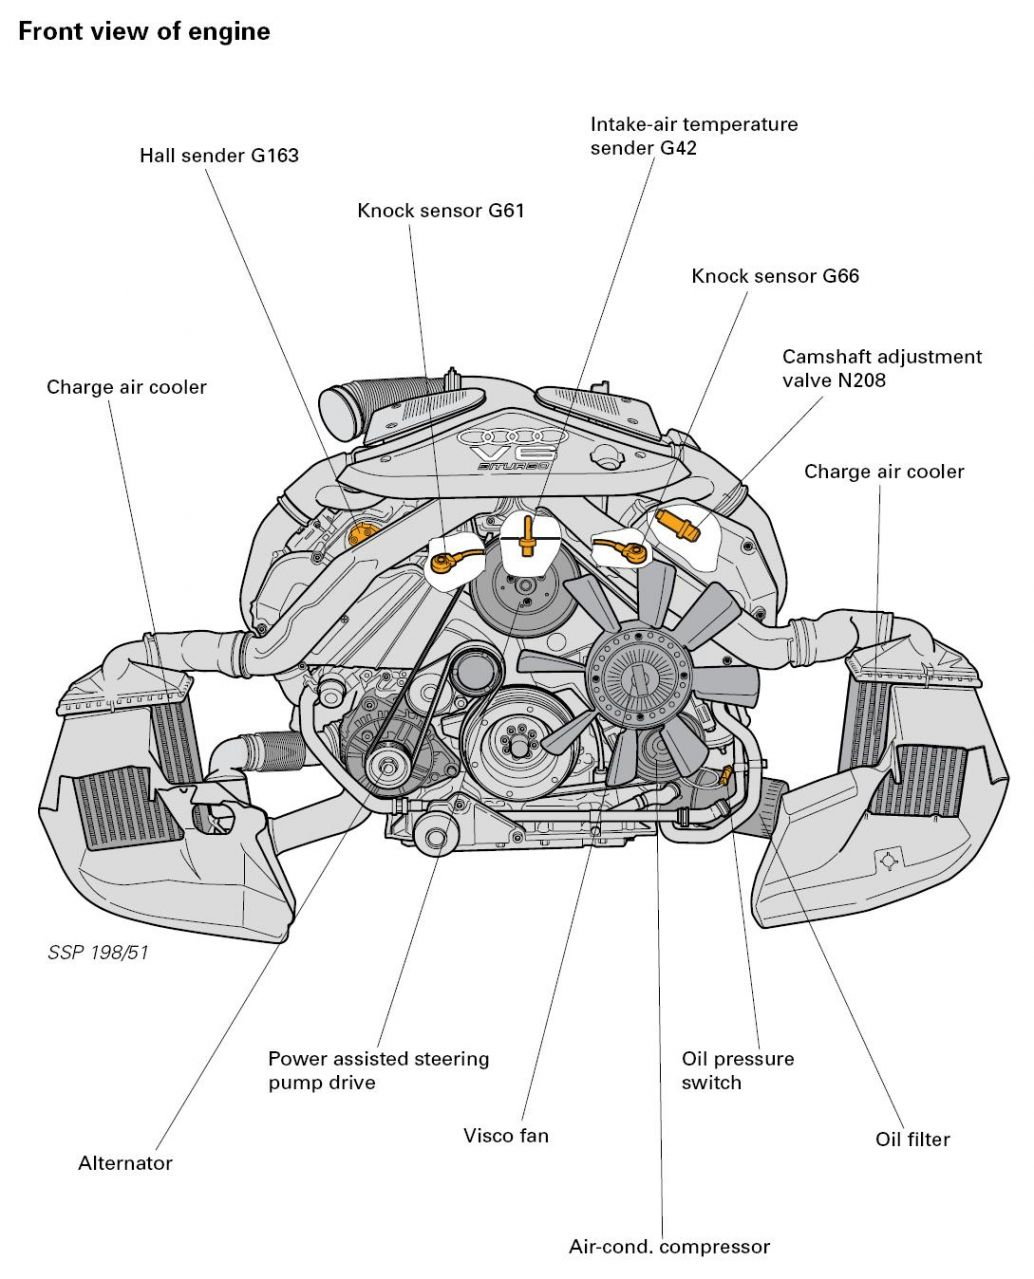 2001 audi s4 engine diagram wiring diagram detailed Audi S4 Engine Bay Parts Diagram 2006 audi a6 engine diagram wiring library 2000 lincoln town car engine diagram 2001 audi s4 engine diagram